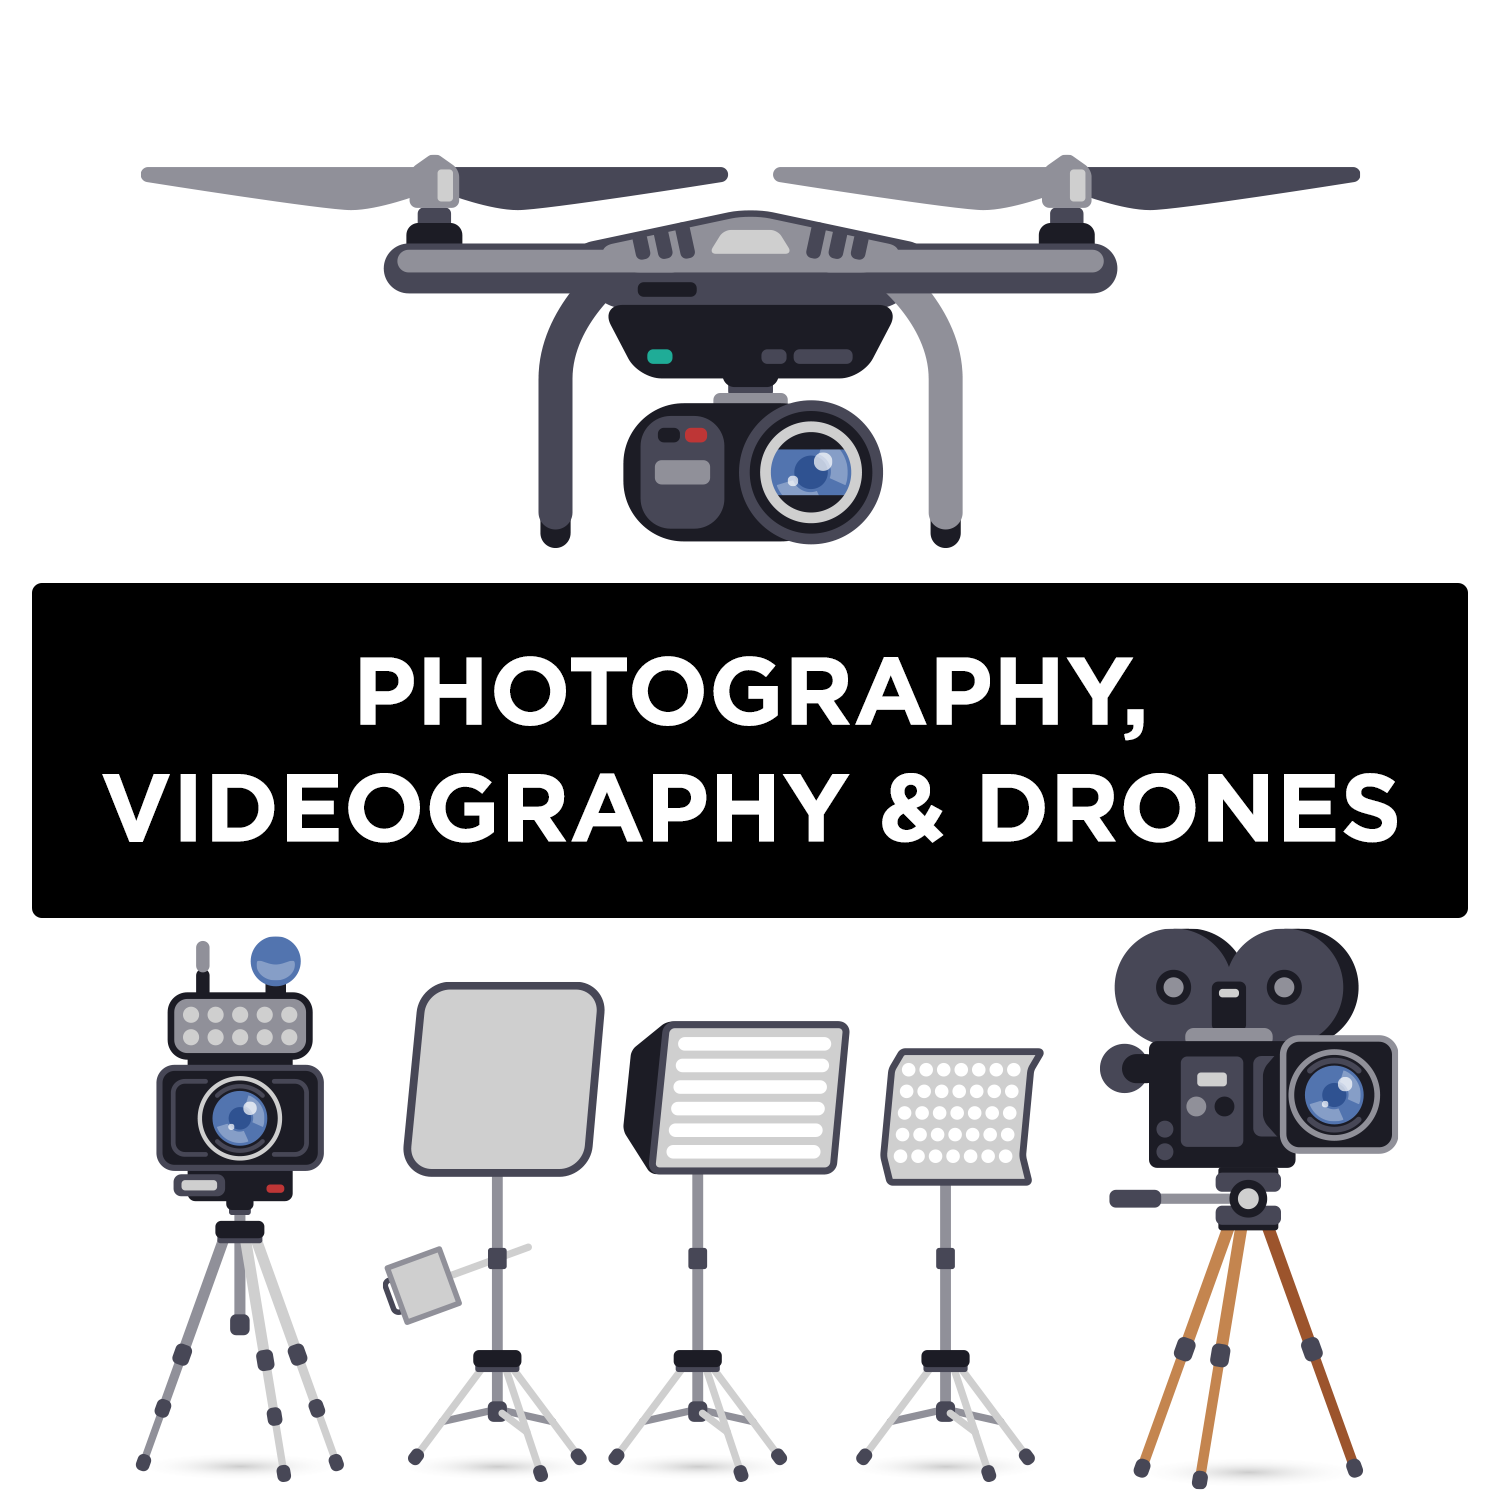 Photography, Videography, and Drones